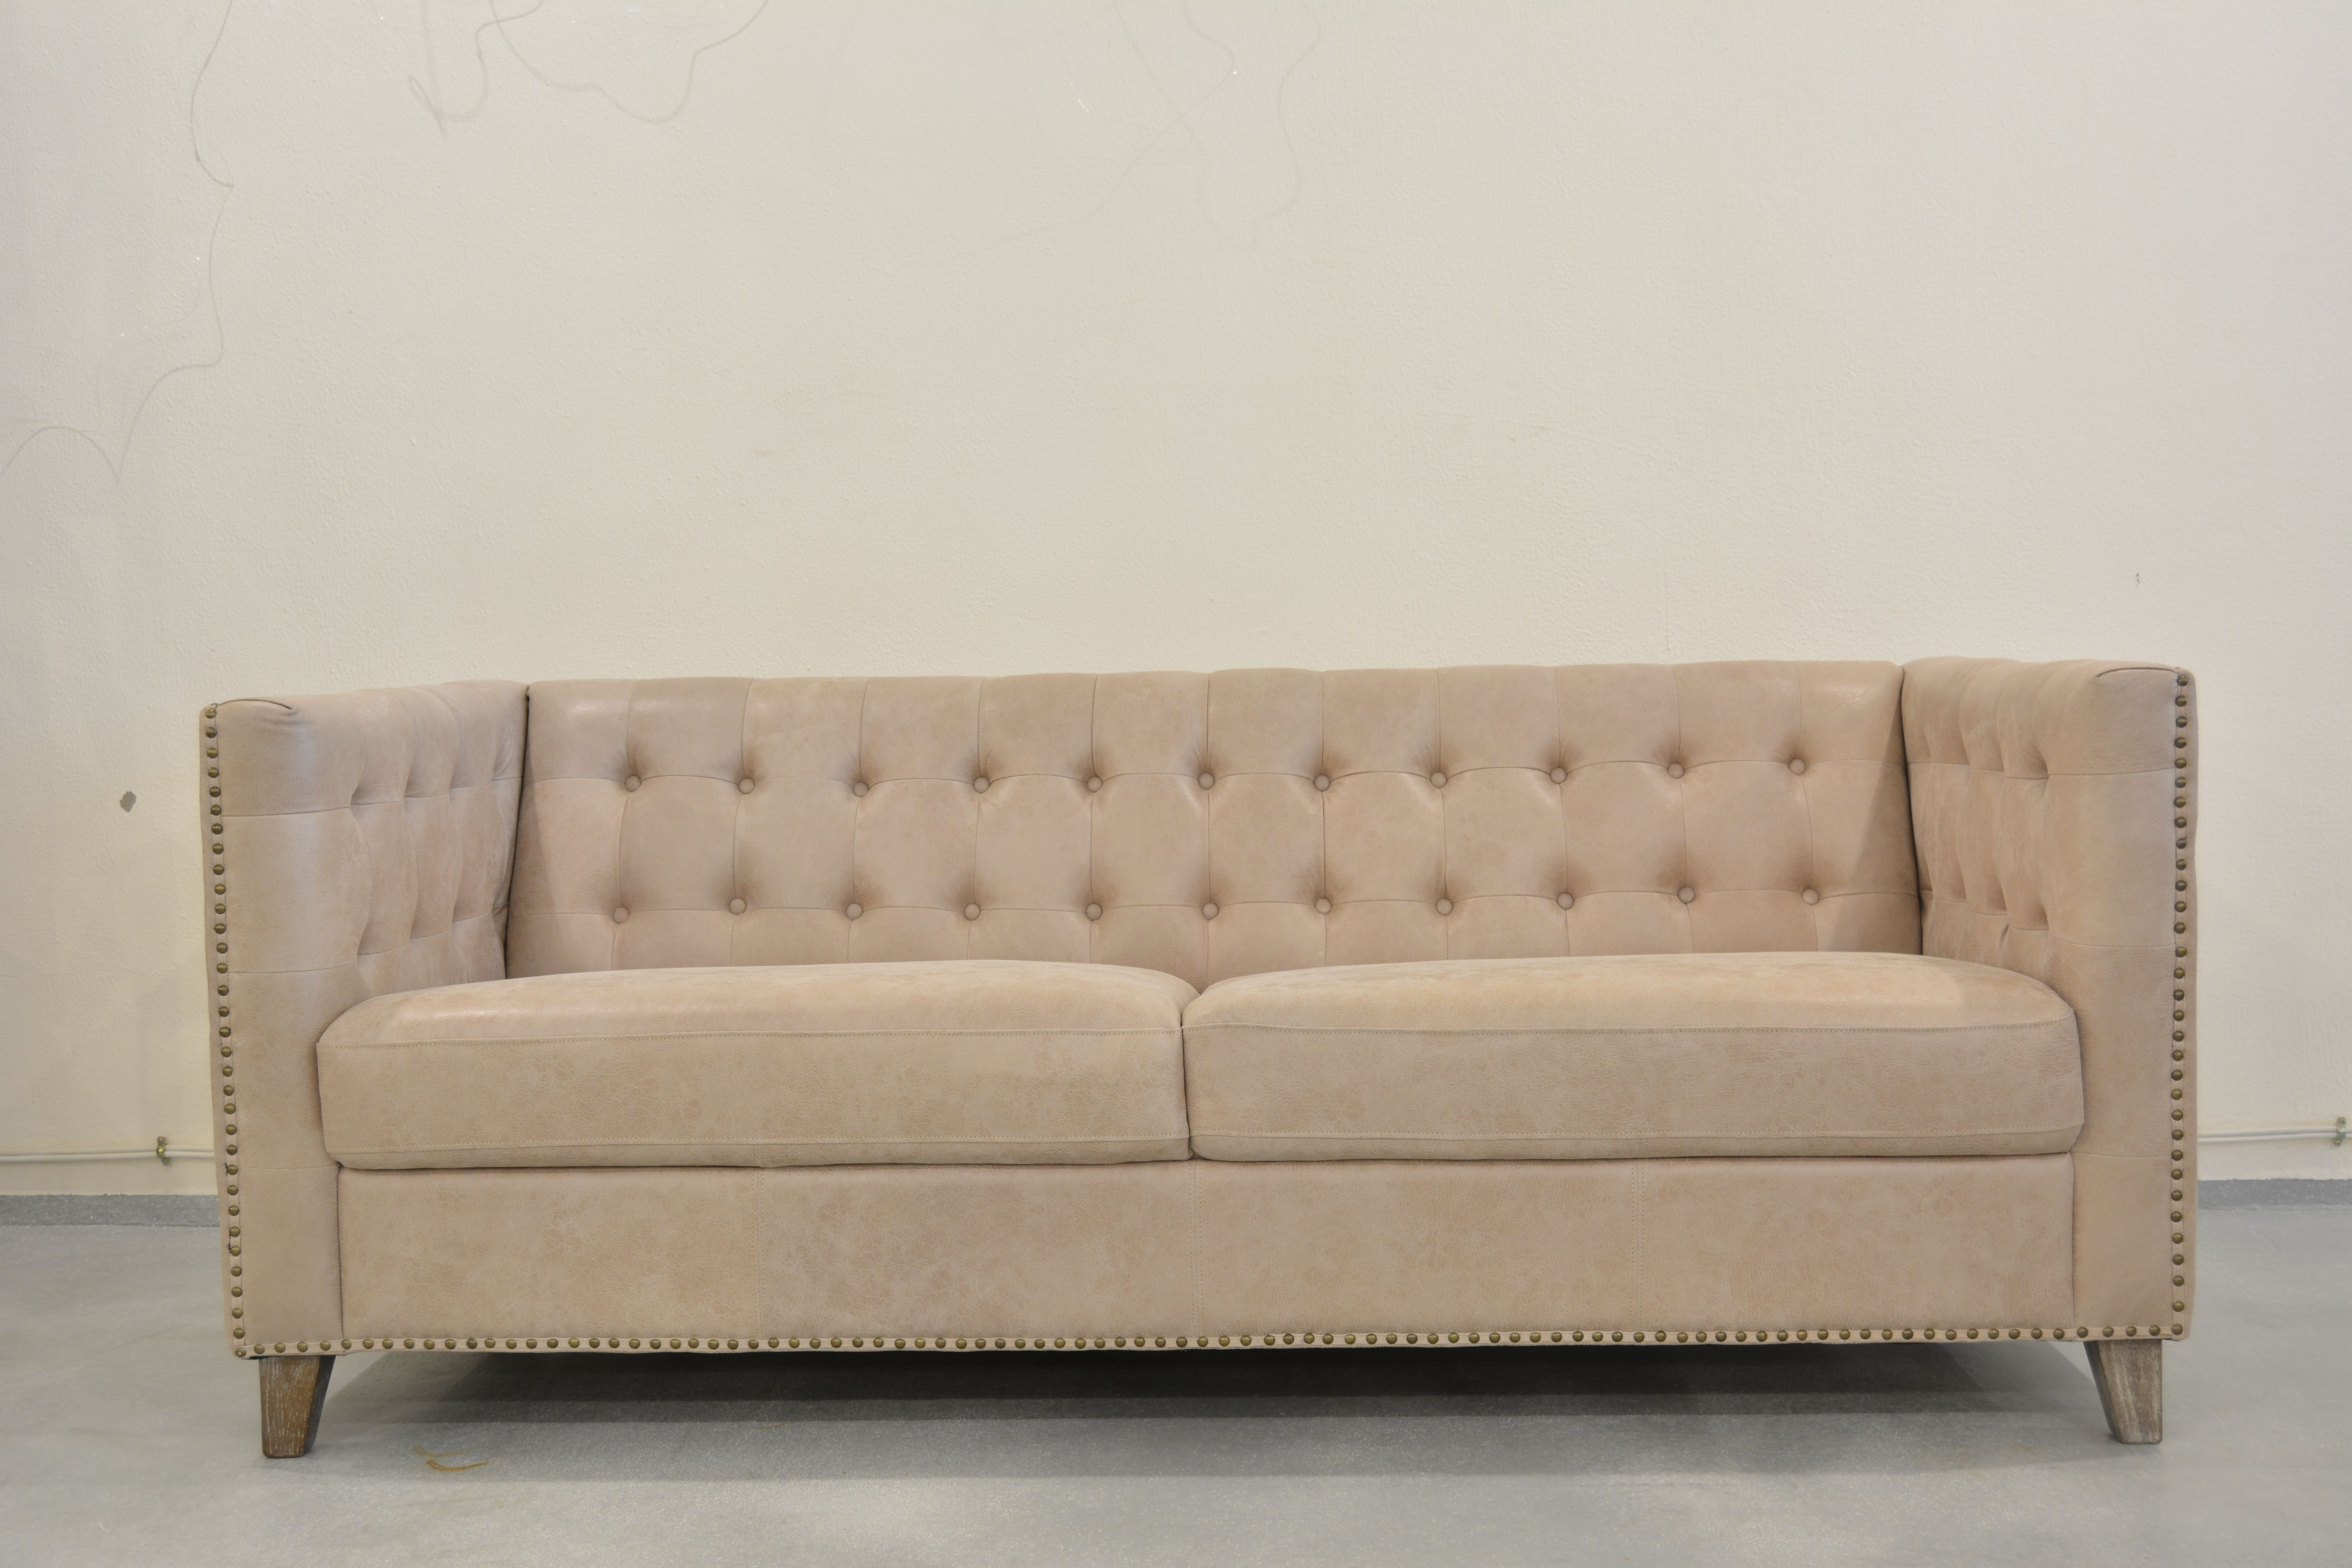 home and furniture chesterfield. Home Furniture, Decoration, 2017 Collection And Furniture Chesterfield